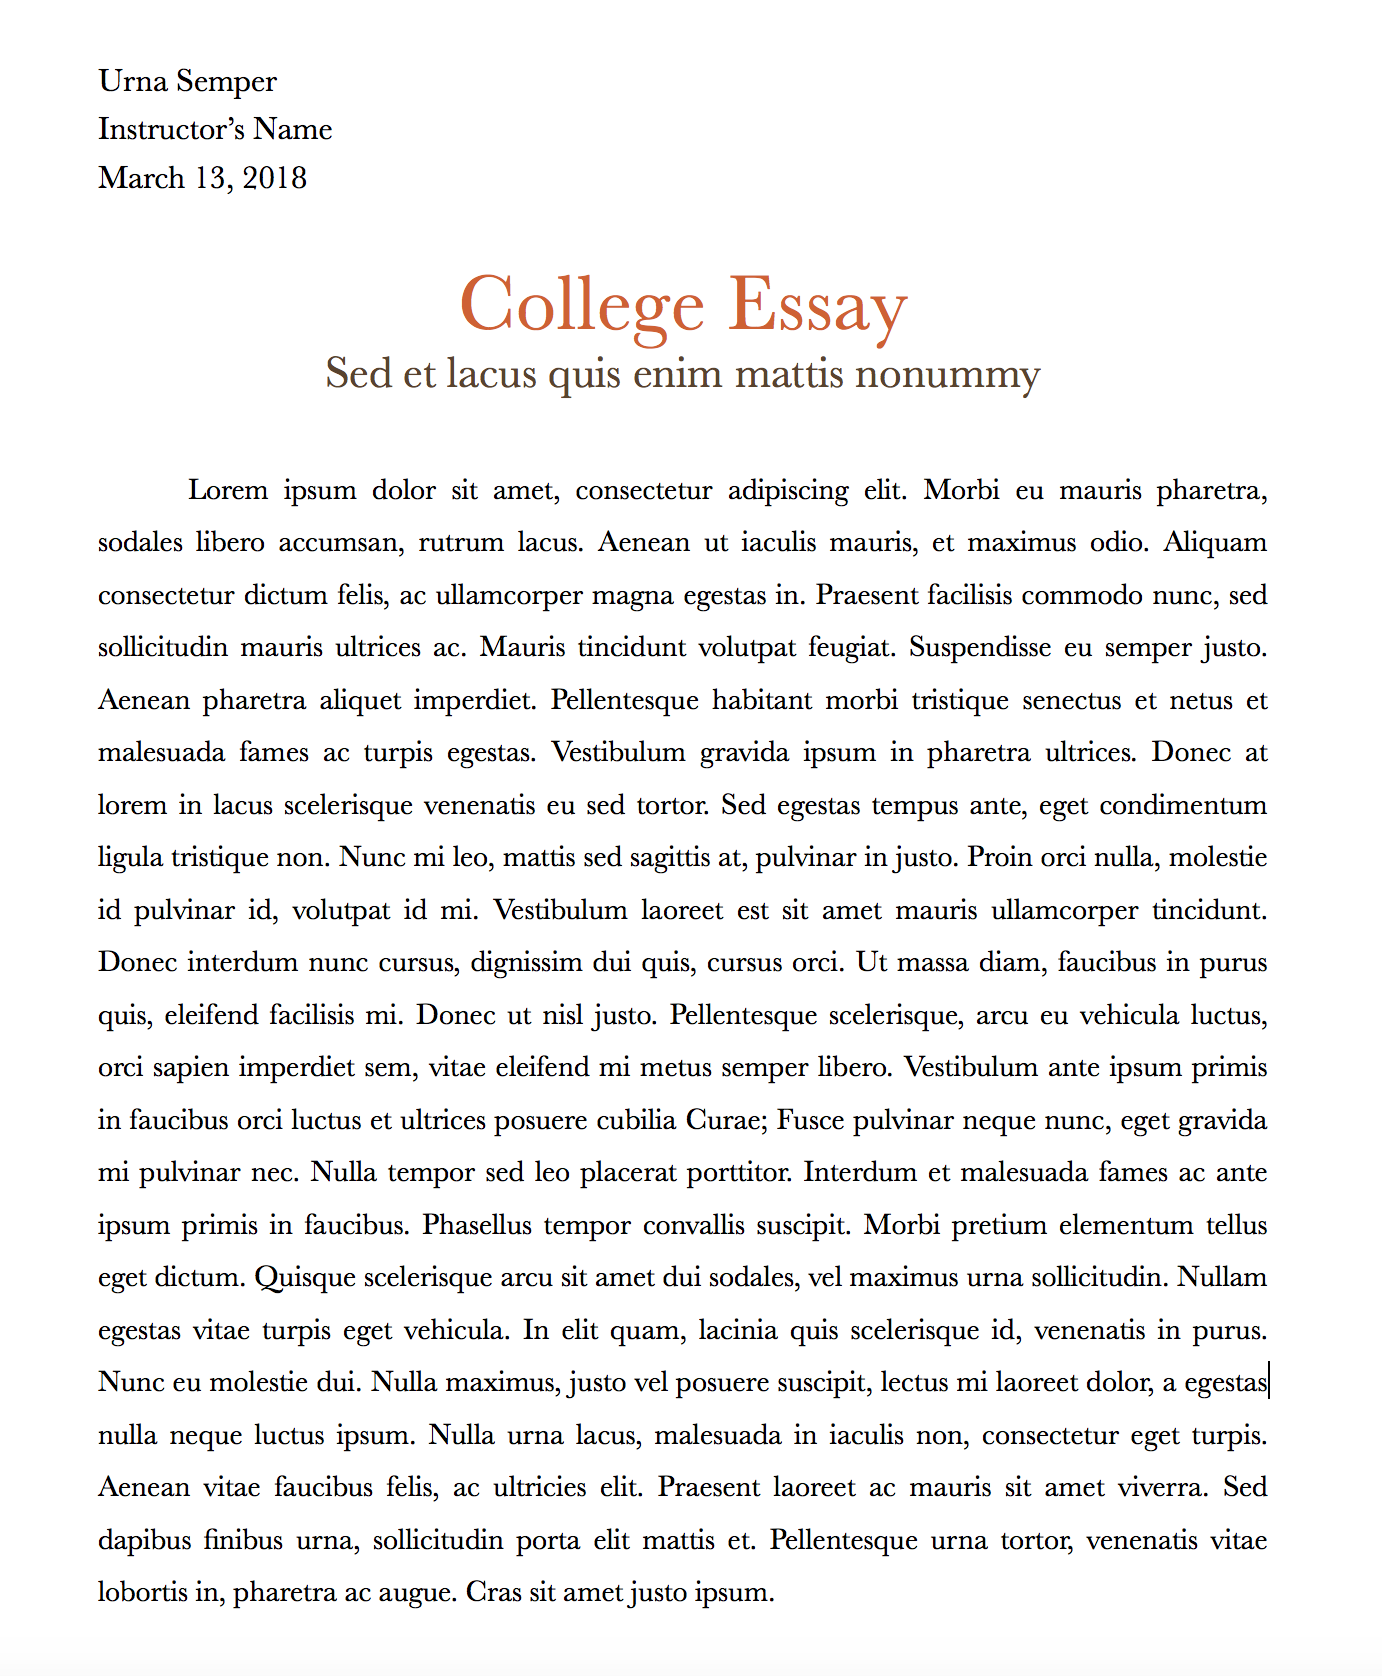 001 Essay Example Pj2rqggvsaub20rib6yp College With No Paragraphs What Do Colleges Look For In Unusual Essays Admissions Officers Want To Hear Full